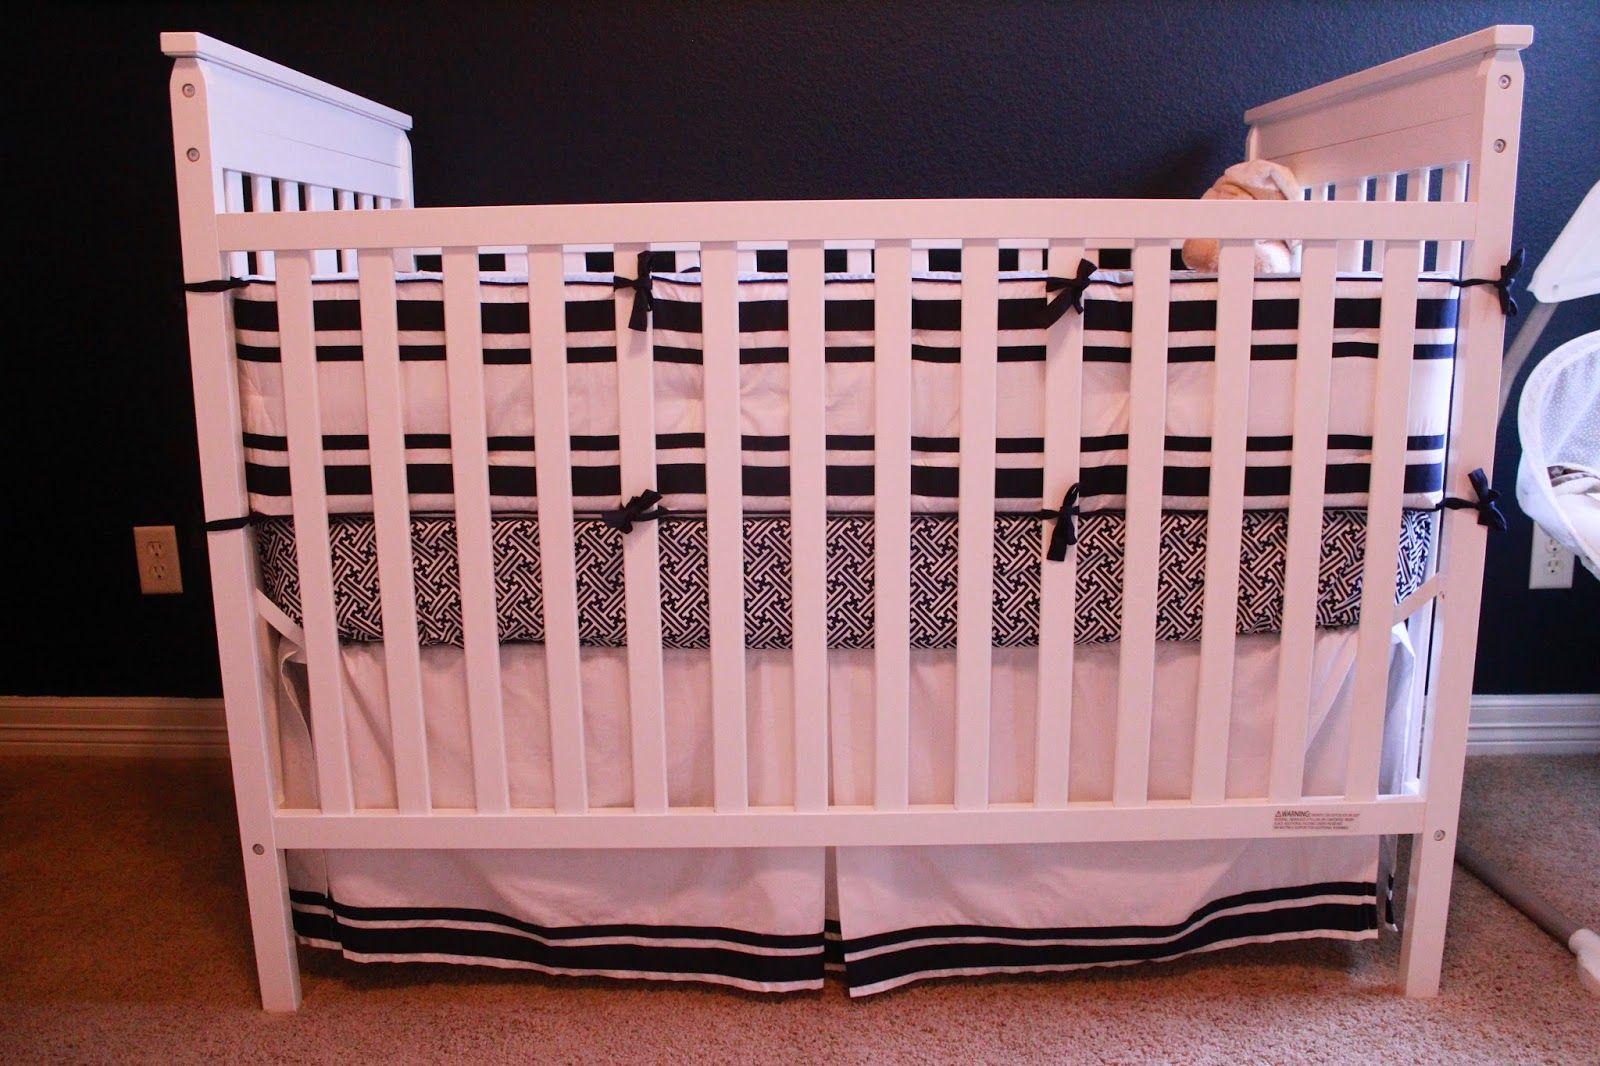 Grant's Navy & White Nursery Pottery barn crib bedding